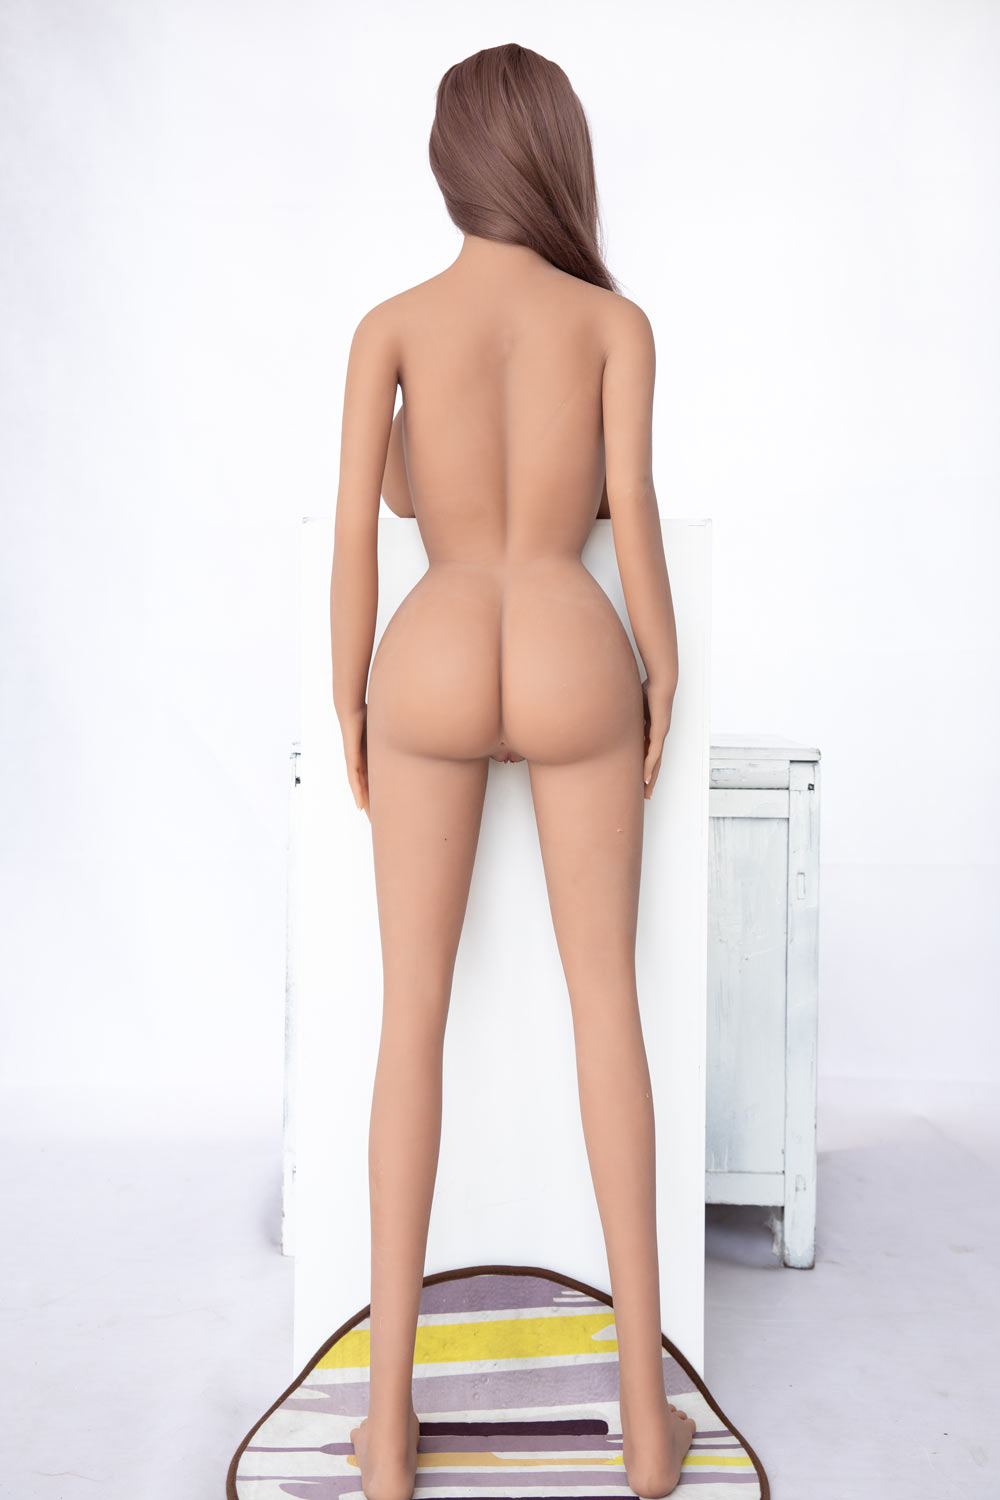 A sex doll with naked ass